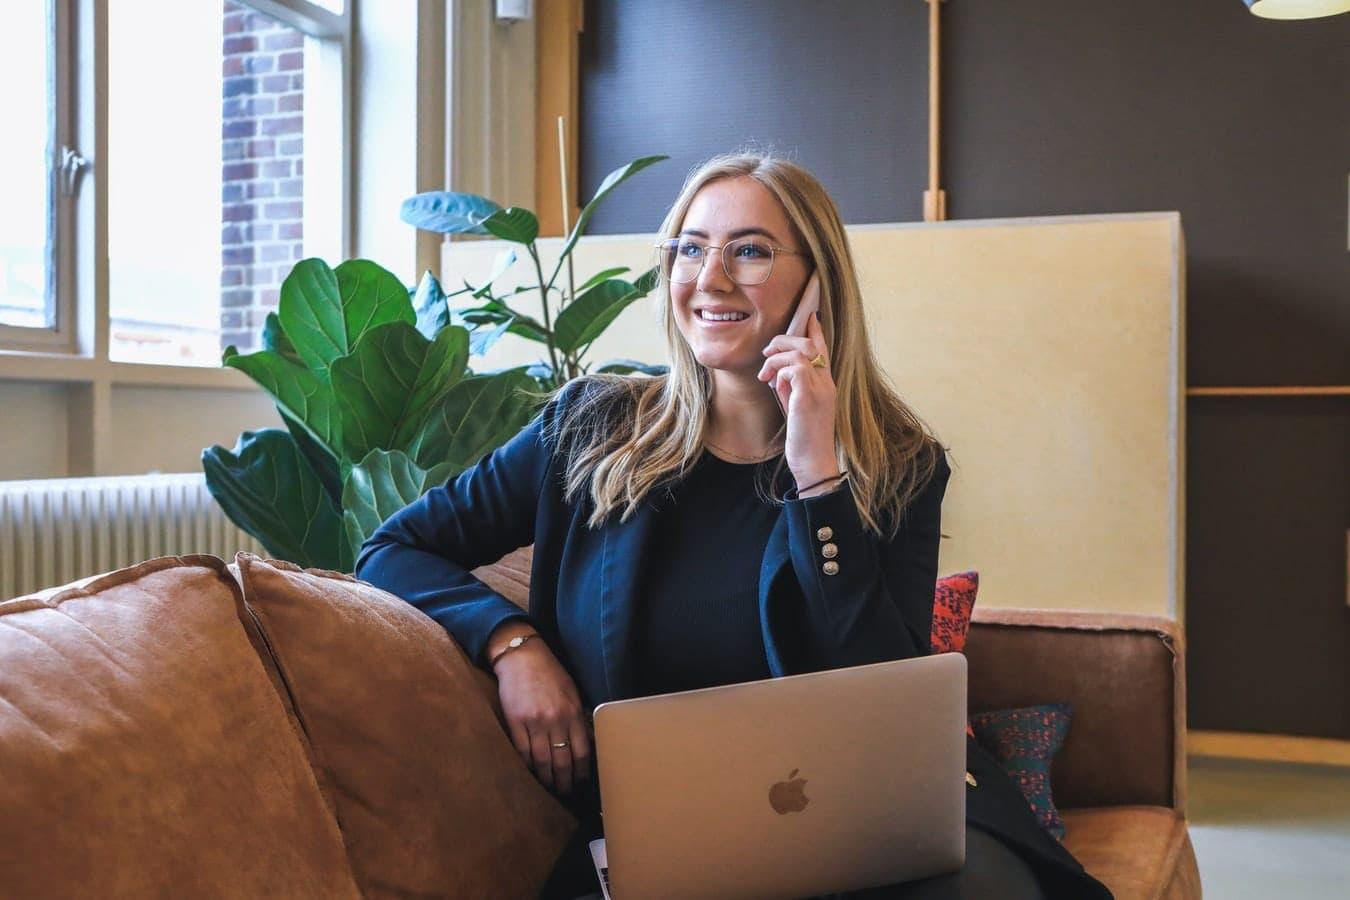 Lady smiling while on mobile call with laptop on leather sofa